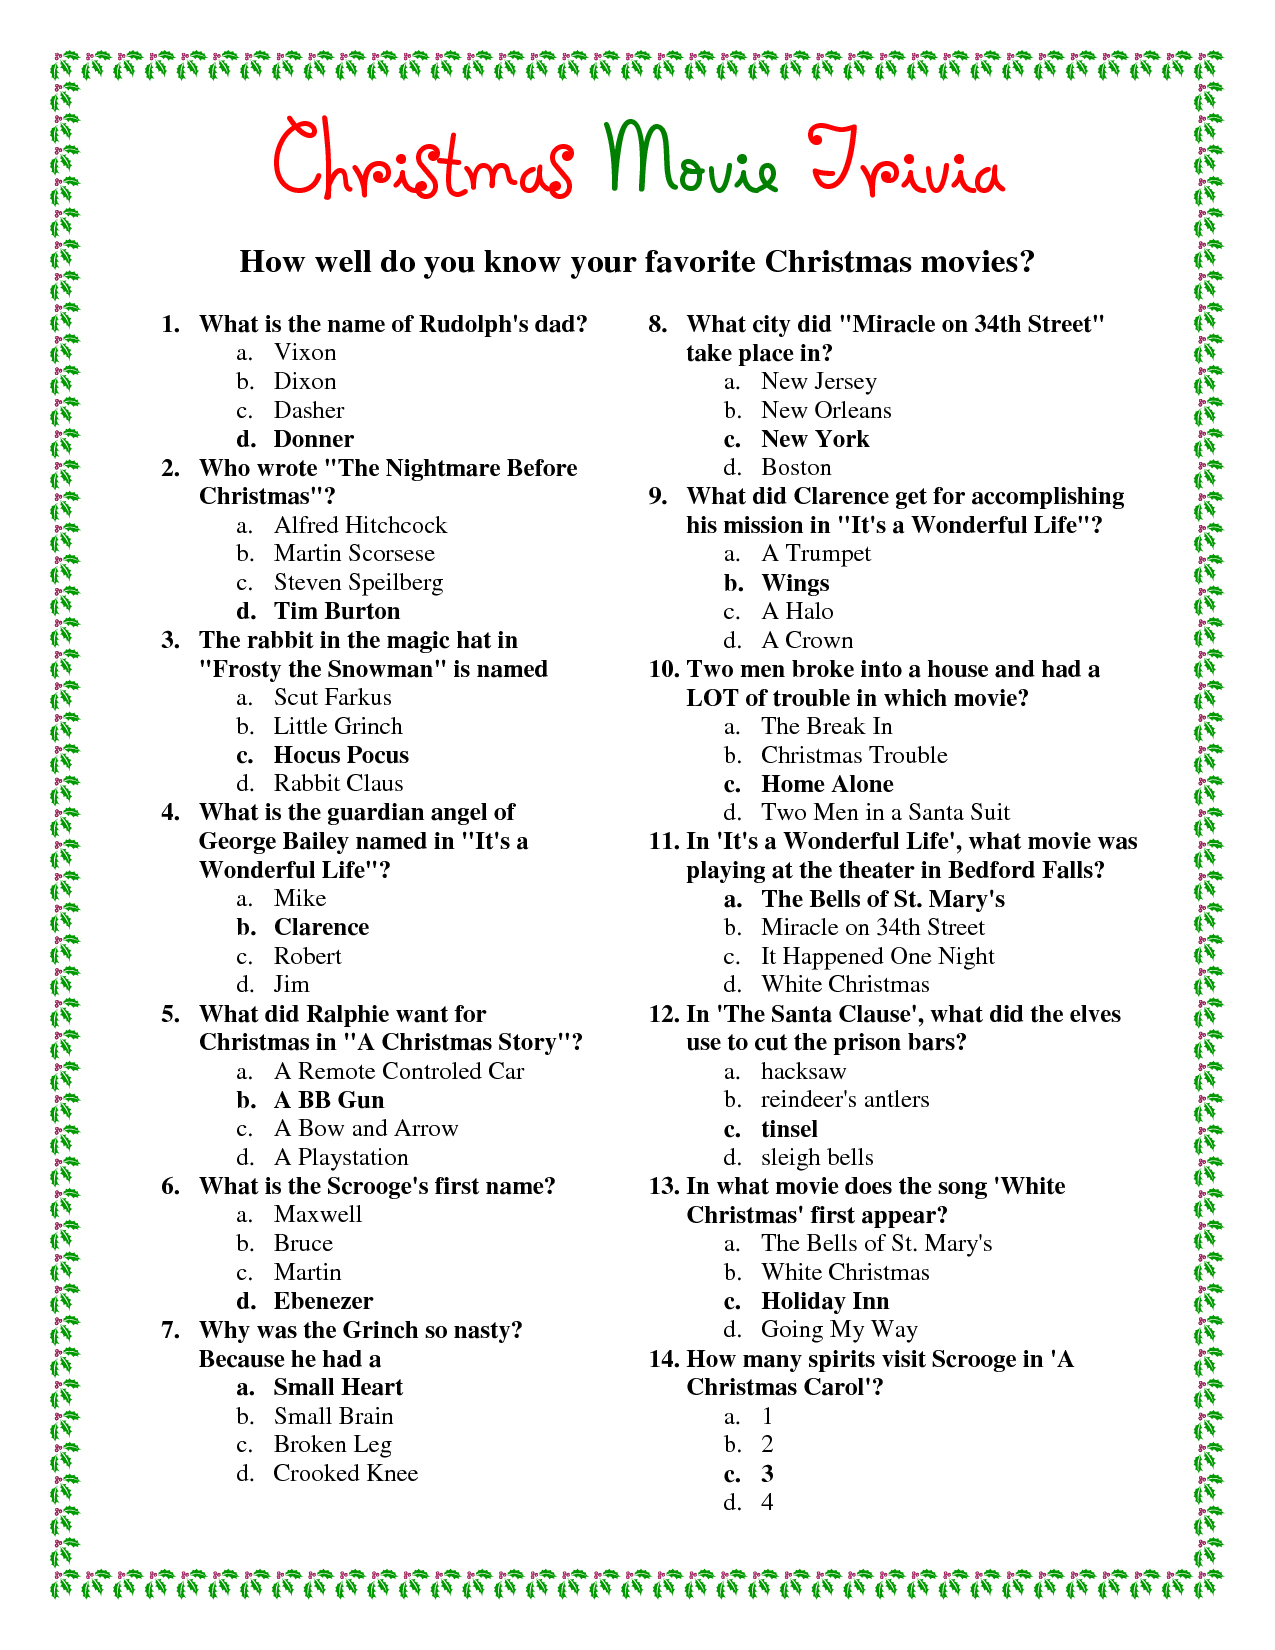 Ideas Collection Easy Christmas Trivia Questions And Answers - Free Christmas Picture Quiz Questions And Answers Printable